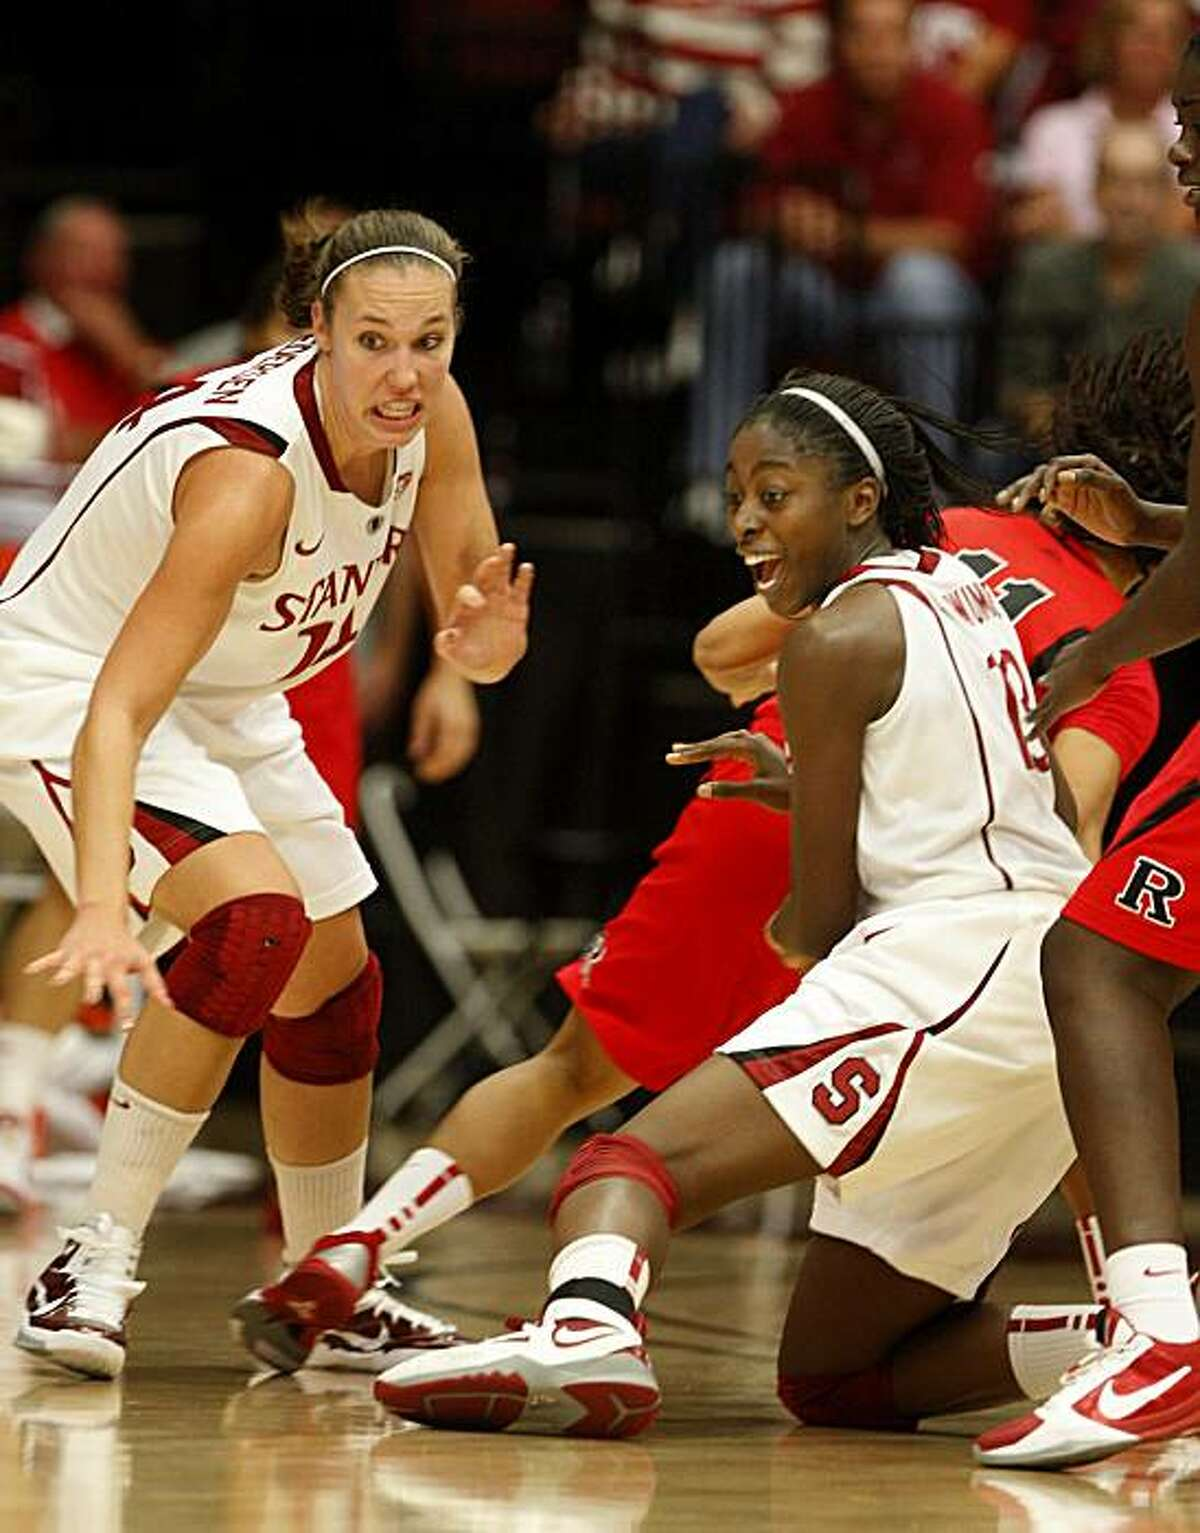 Kayla Pedersen (left) and Chiney Ogwumike reacted to a loose ball in the second period against Rutgers at Maples Pavilion on Sunday.